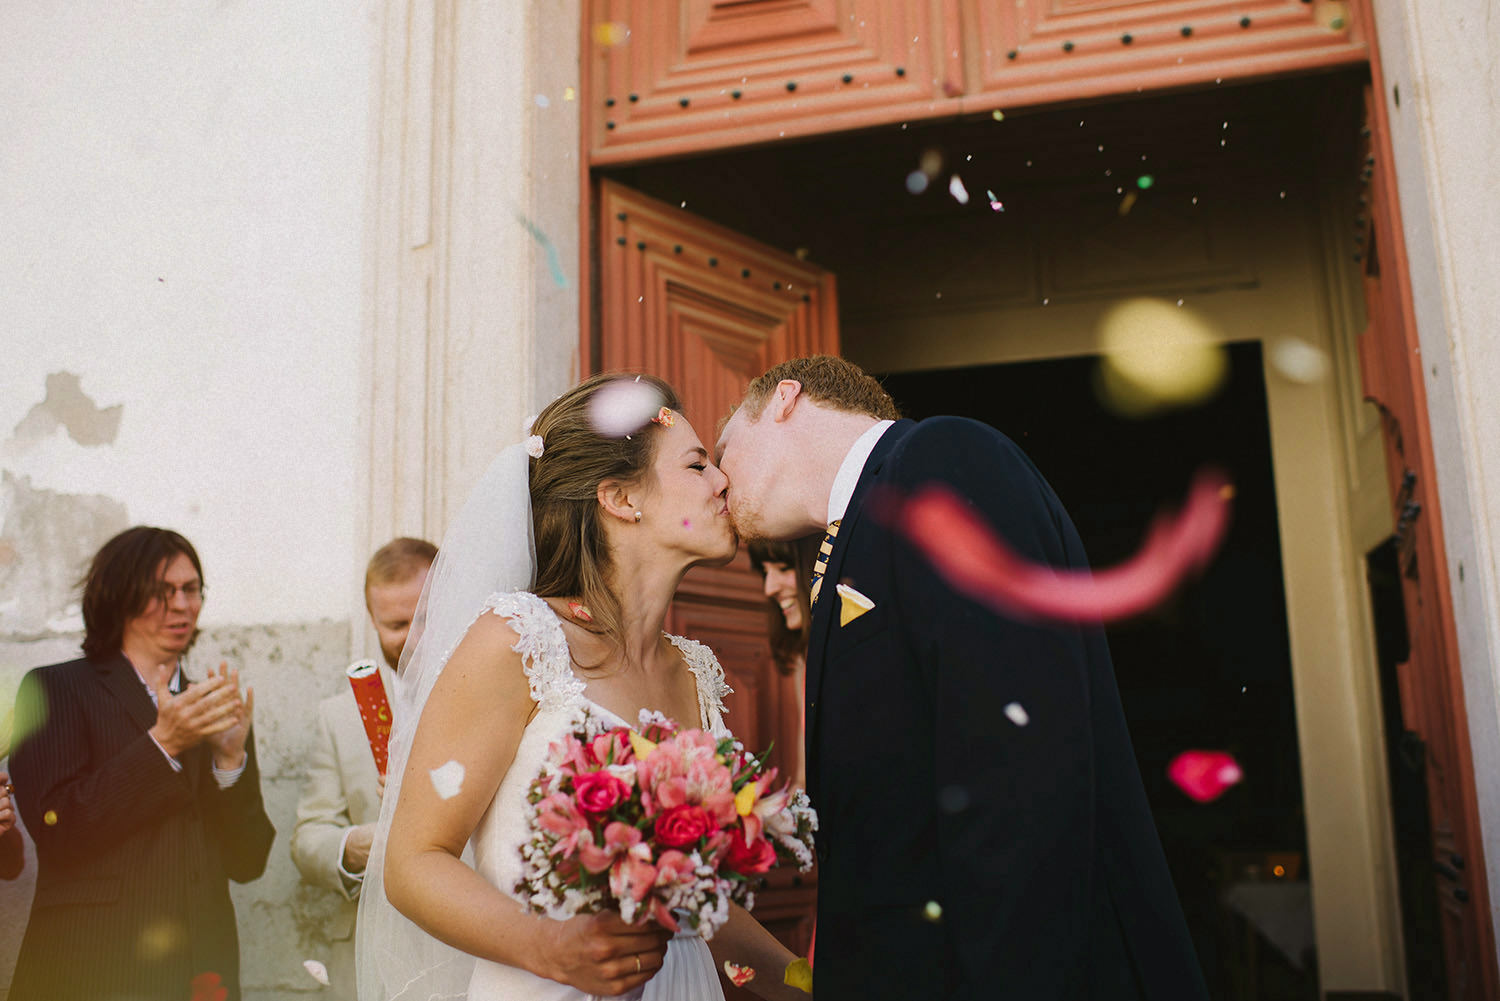 Destination wedding planning tips and advice. Destination weddings abroad venues.  Destination wedding Dresses. Getting married in Portugal. Getting married in Iceland. Getting married in Italy. Getting married in Spain. Getting married in France. Getting married in Sweden.